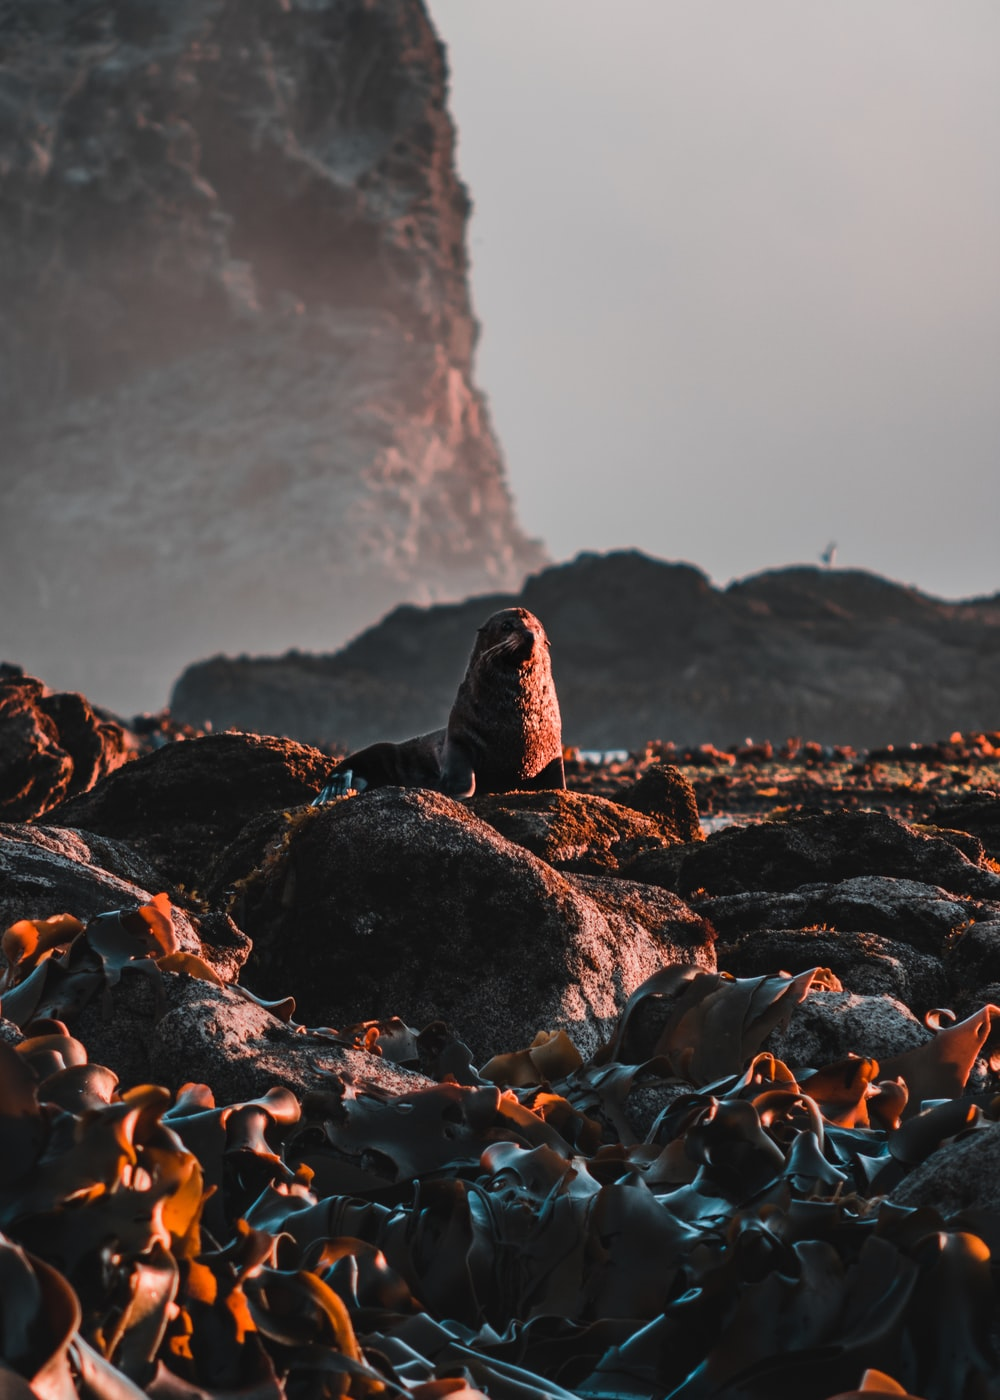 sealion surrounded by rocks during daytime